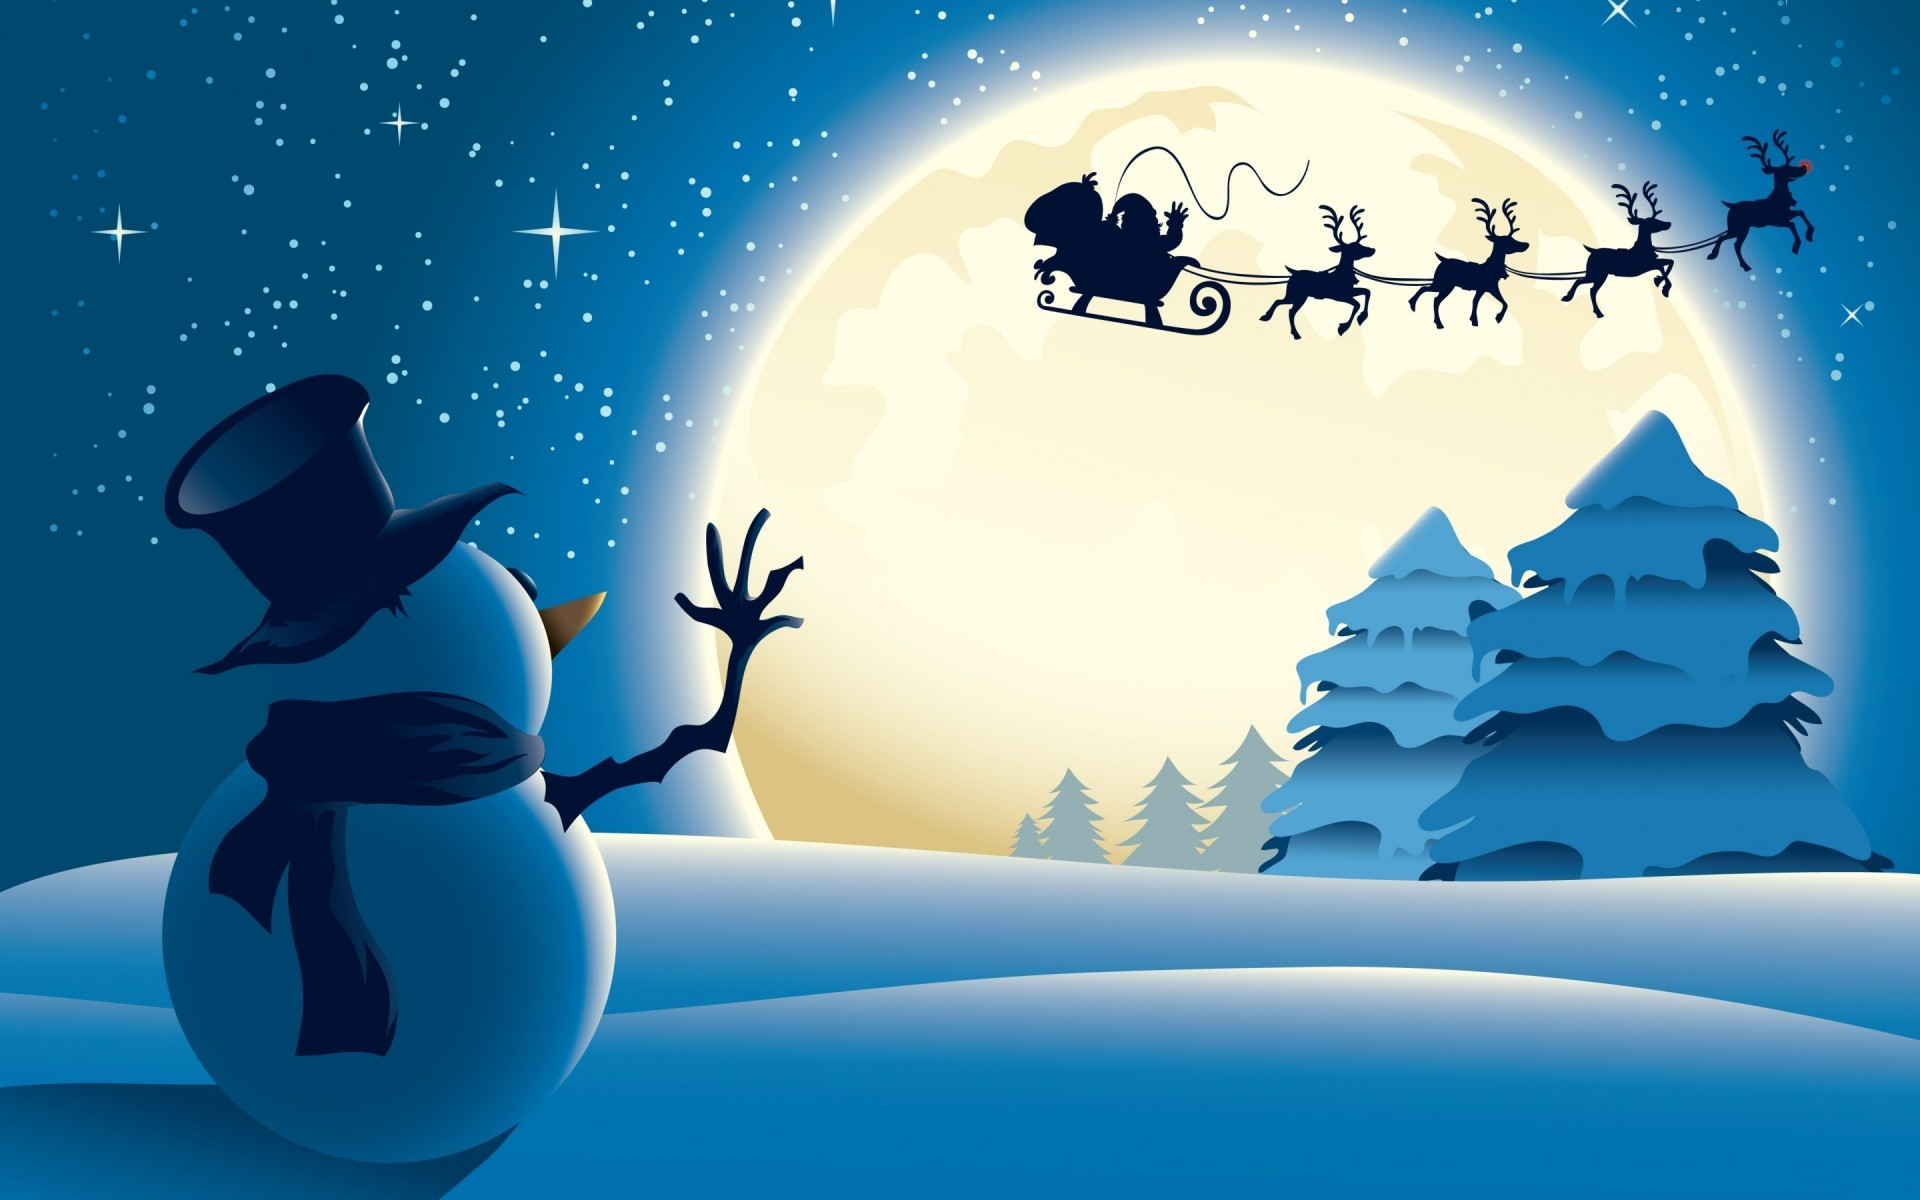 Cute Little Snowman Android Wallpapers